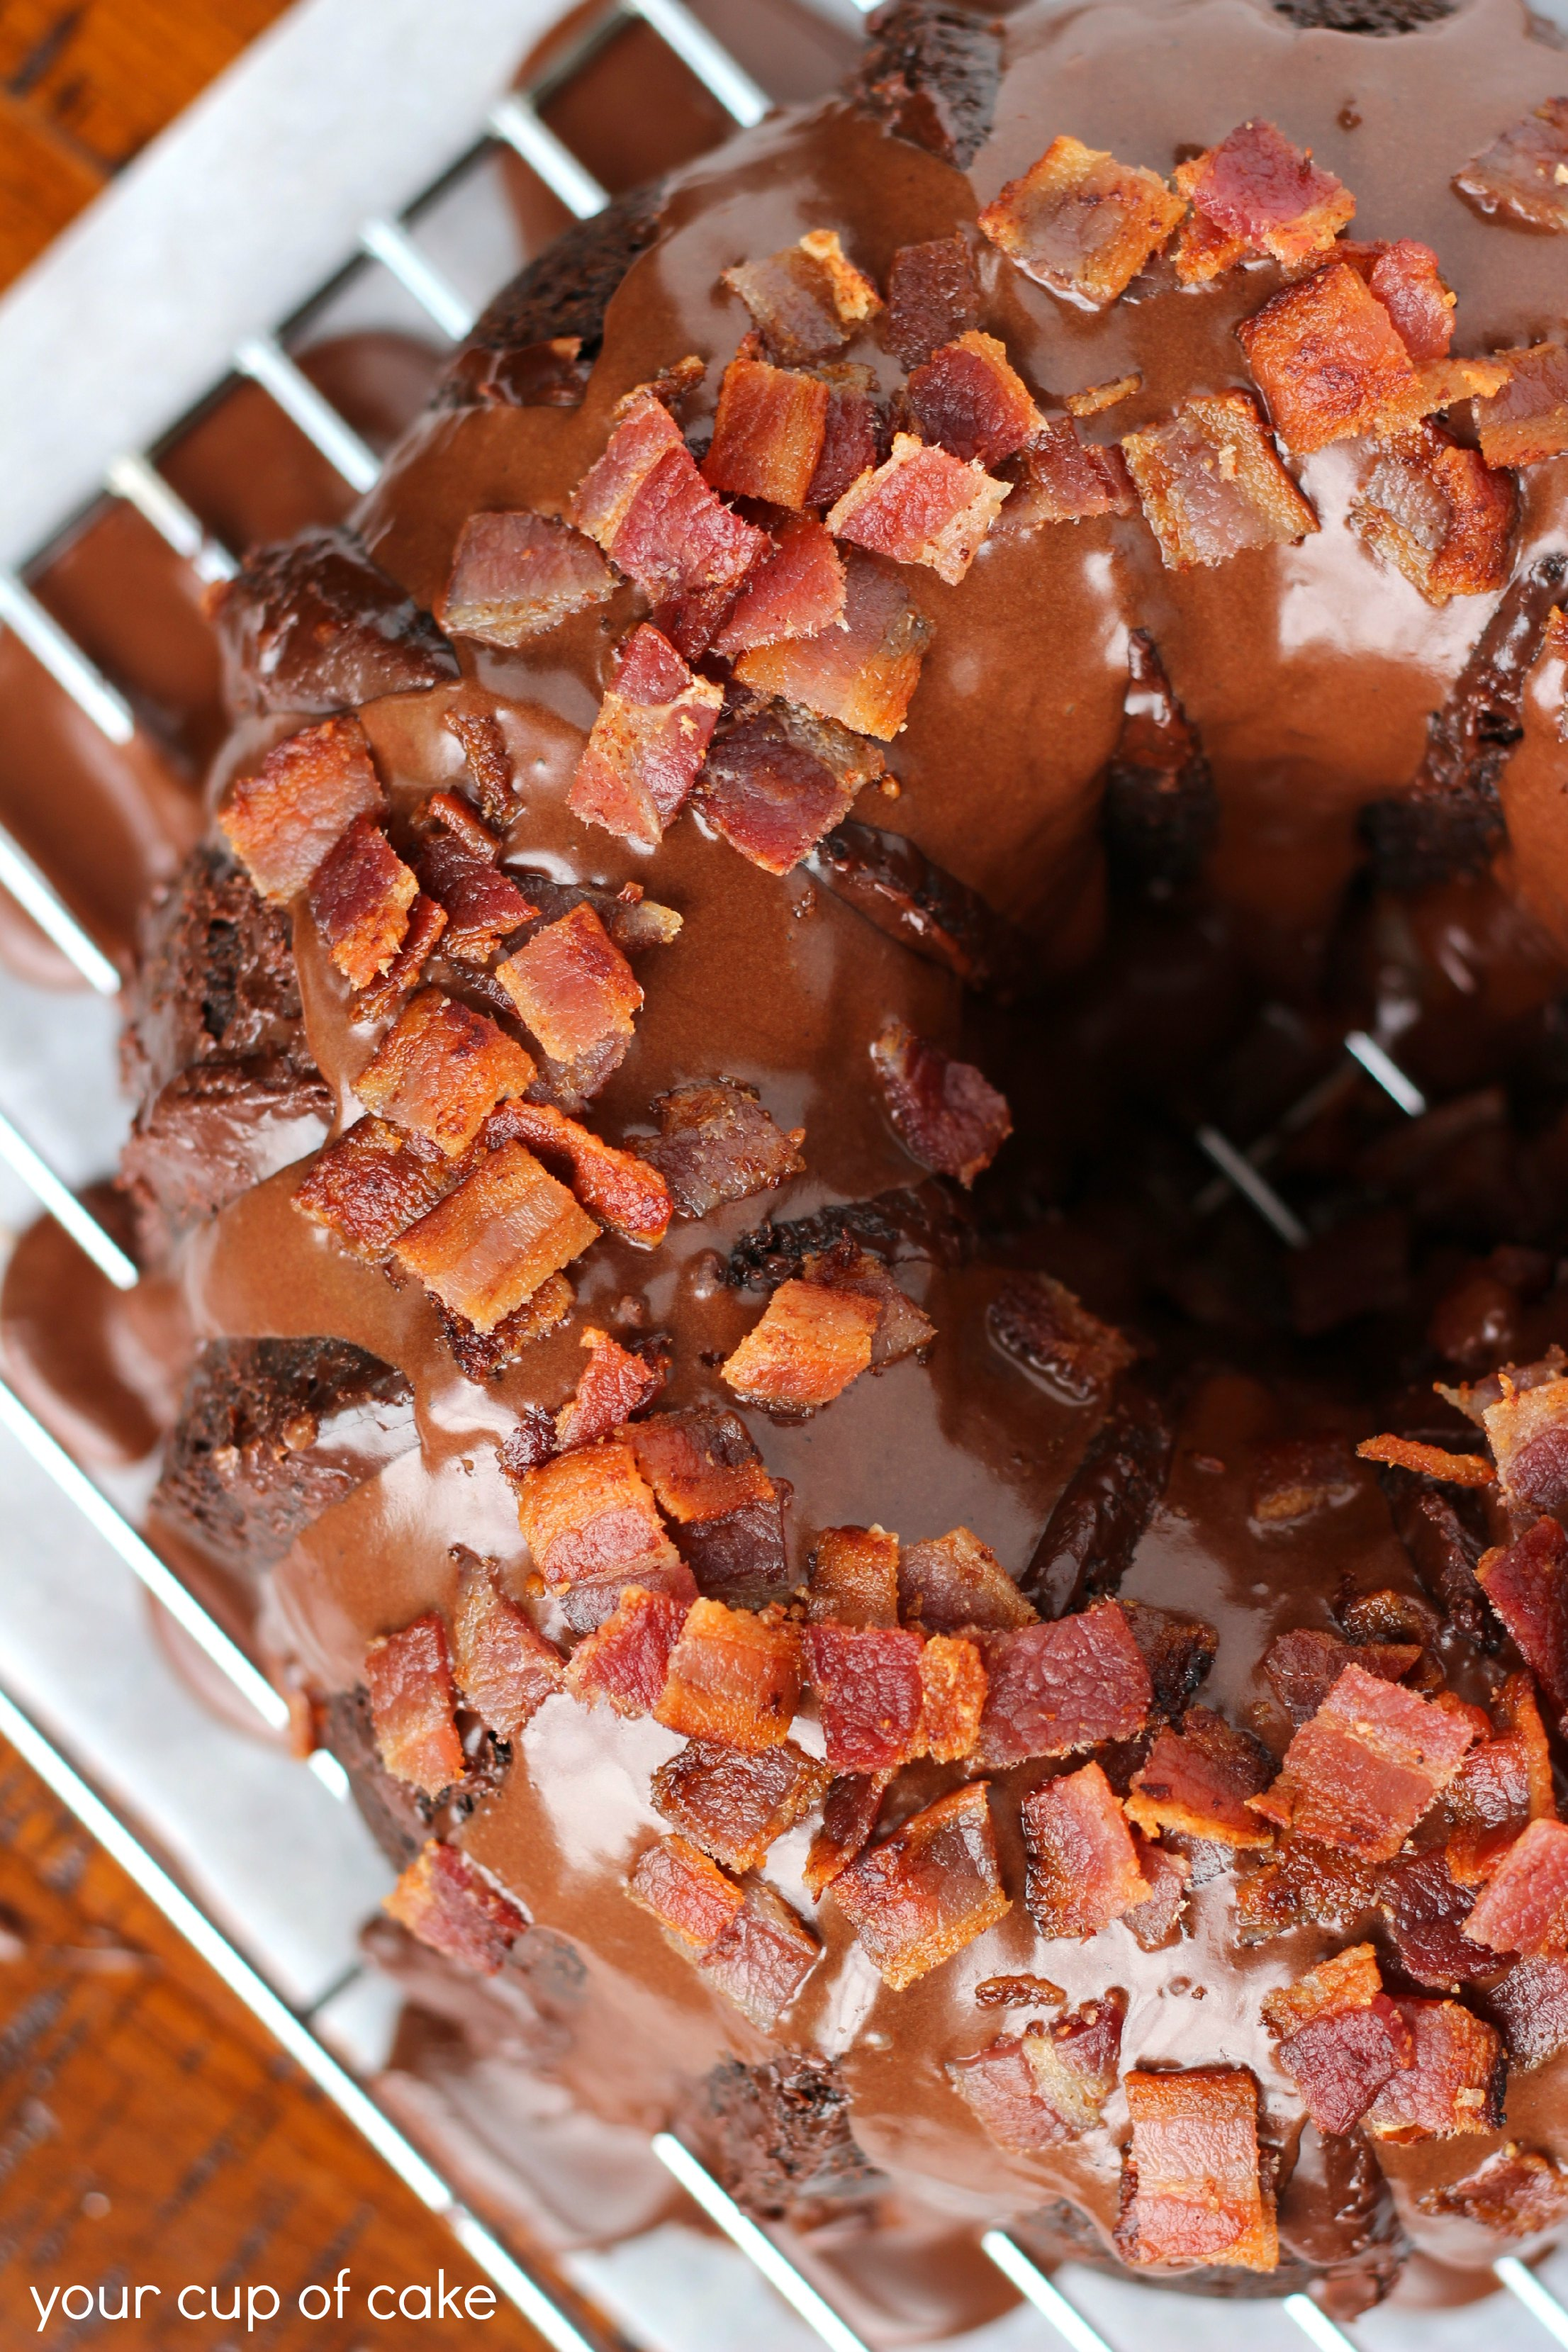 Chocolate Bacon Bundt Cake - Your Cup of Cake